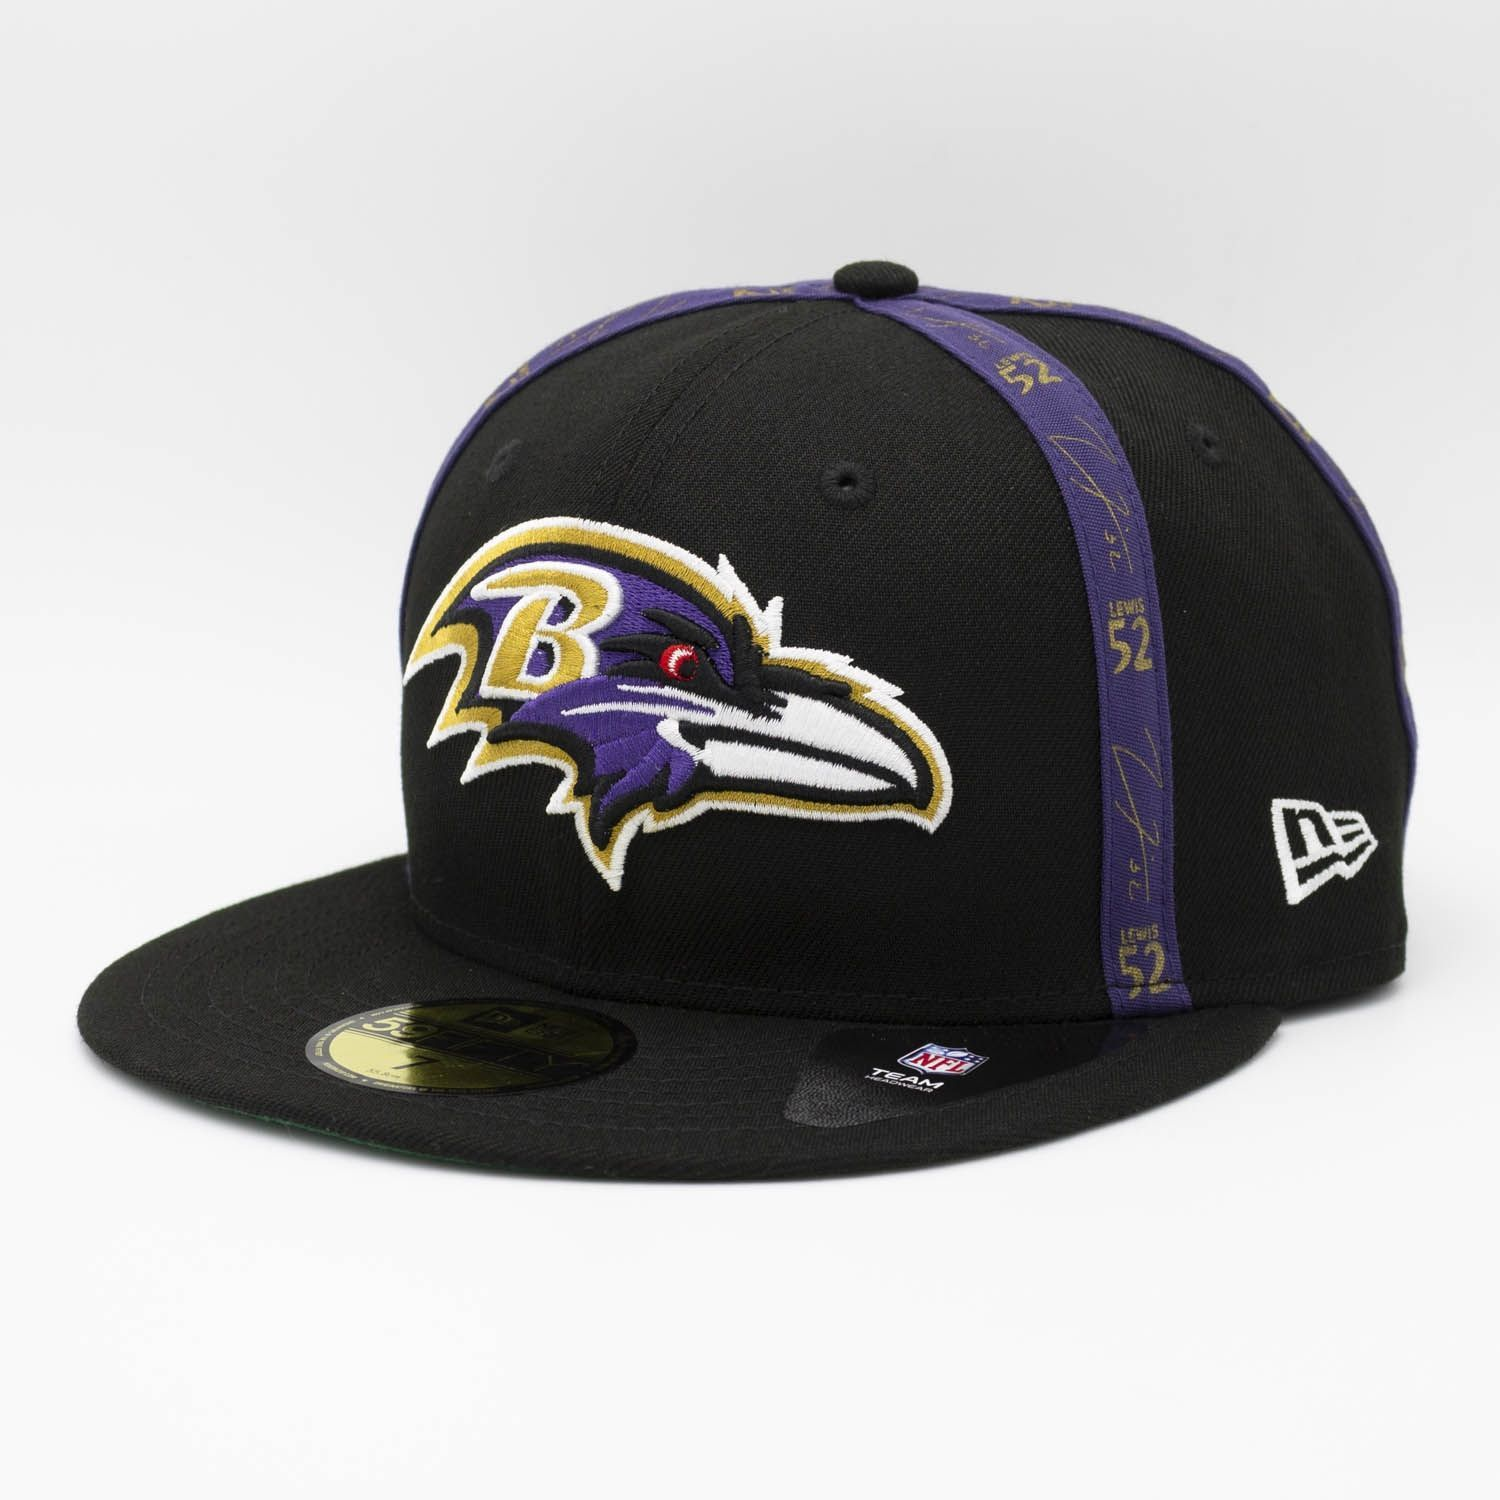 c9498a9ca New Era Ray Lewis Reverse Script Baltimore Ravens 59FIFTY Fitted NFL Cap